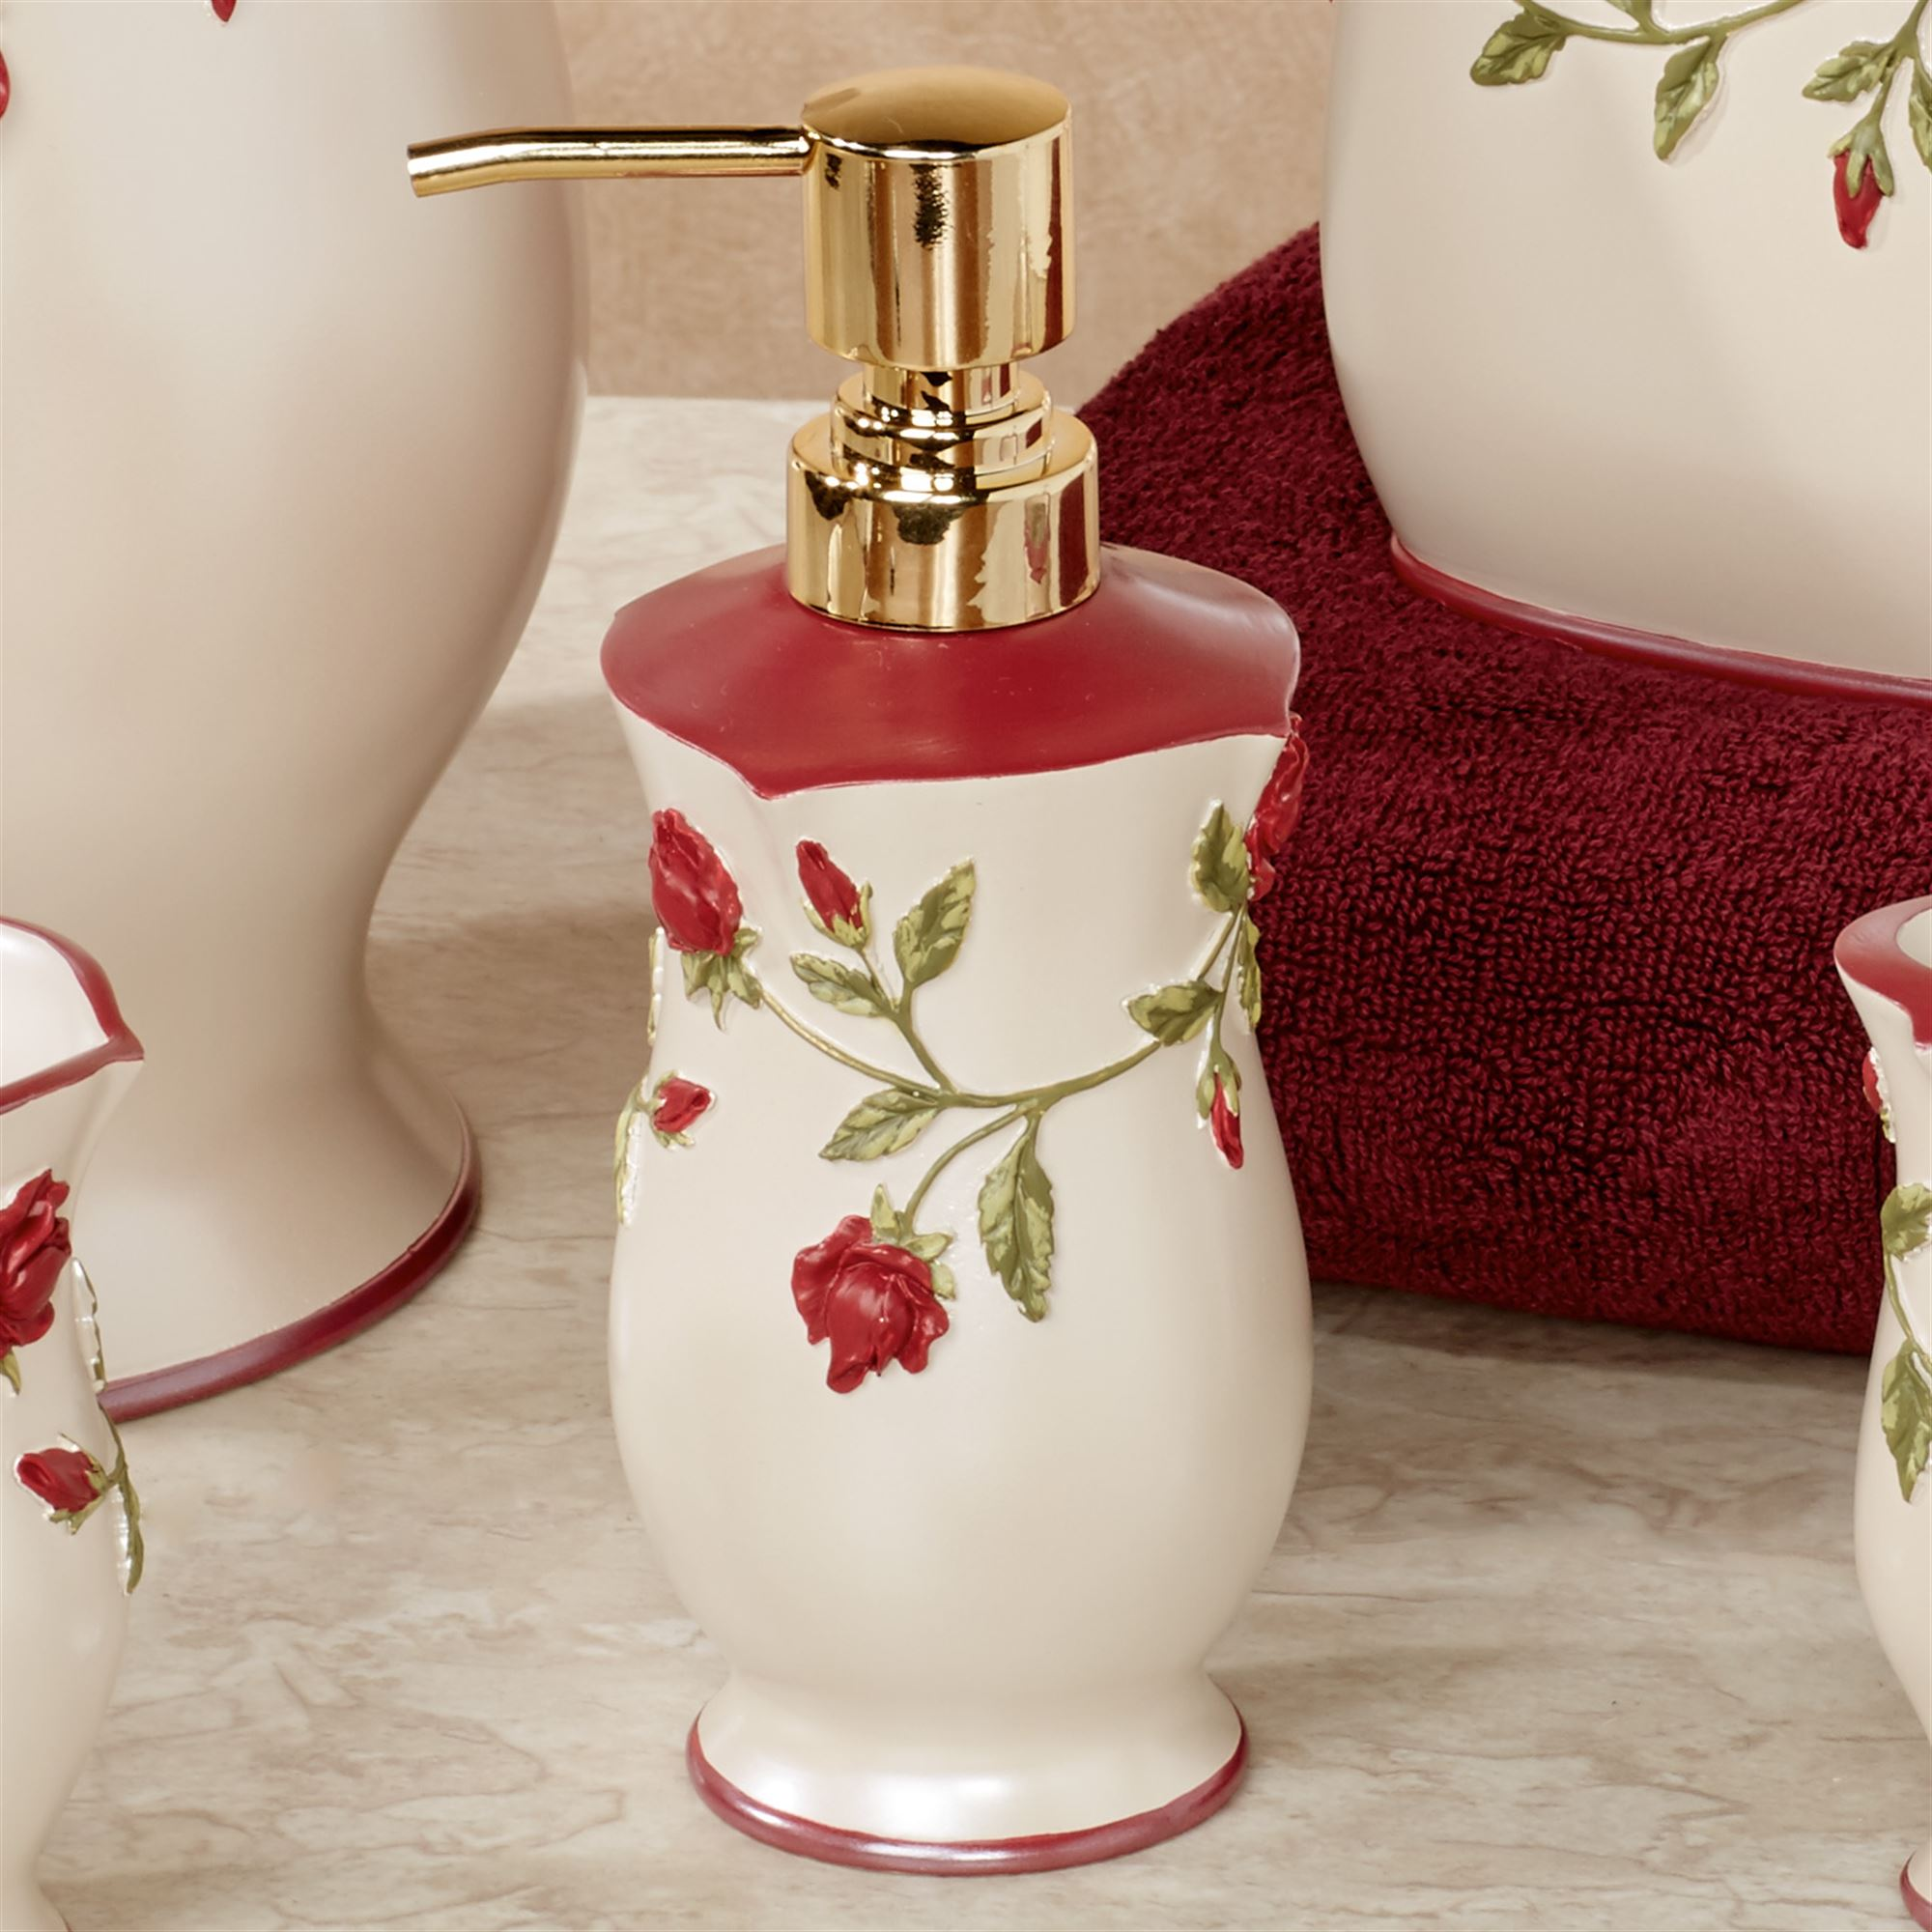 Red Rose Bathroom Accessories. Vining Rose Lotion Soap Dispenser Pearl